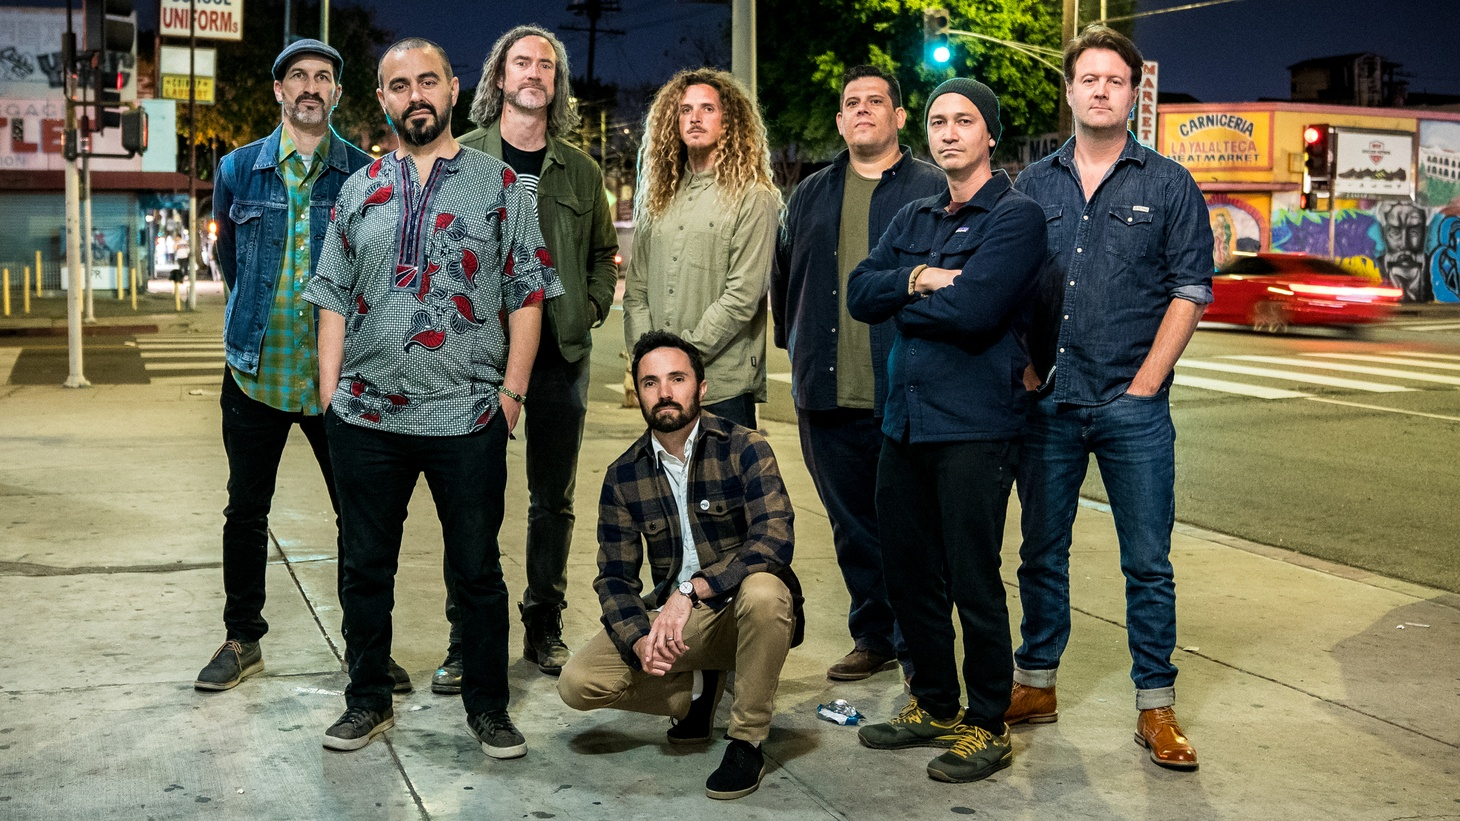 """Ten-piece 'tropi-funk' outfit Jungle Fire were recently named one of the city's best live bands by the LA Times, and we agree! """"Pico Union"""" is a musical shout out to one of our historic districts and a cool trackto add to your collection."""